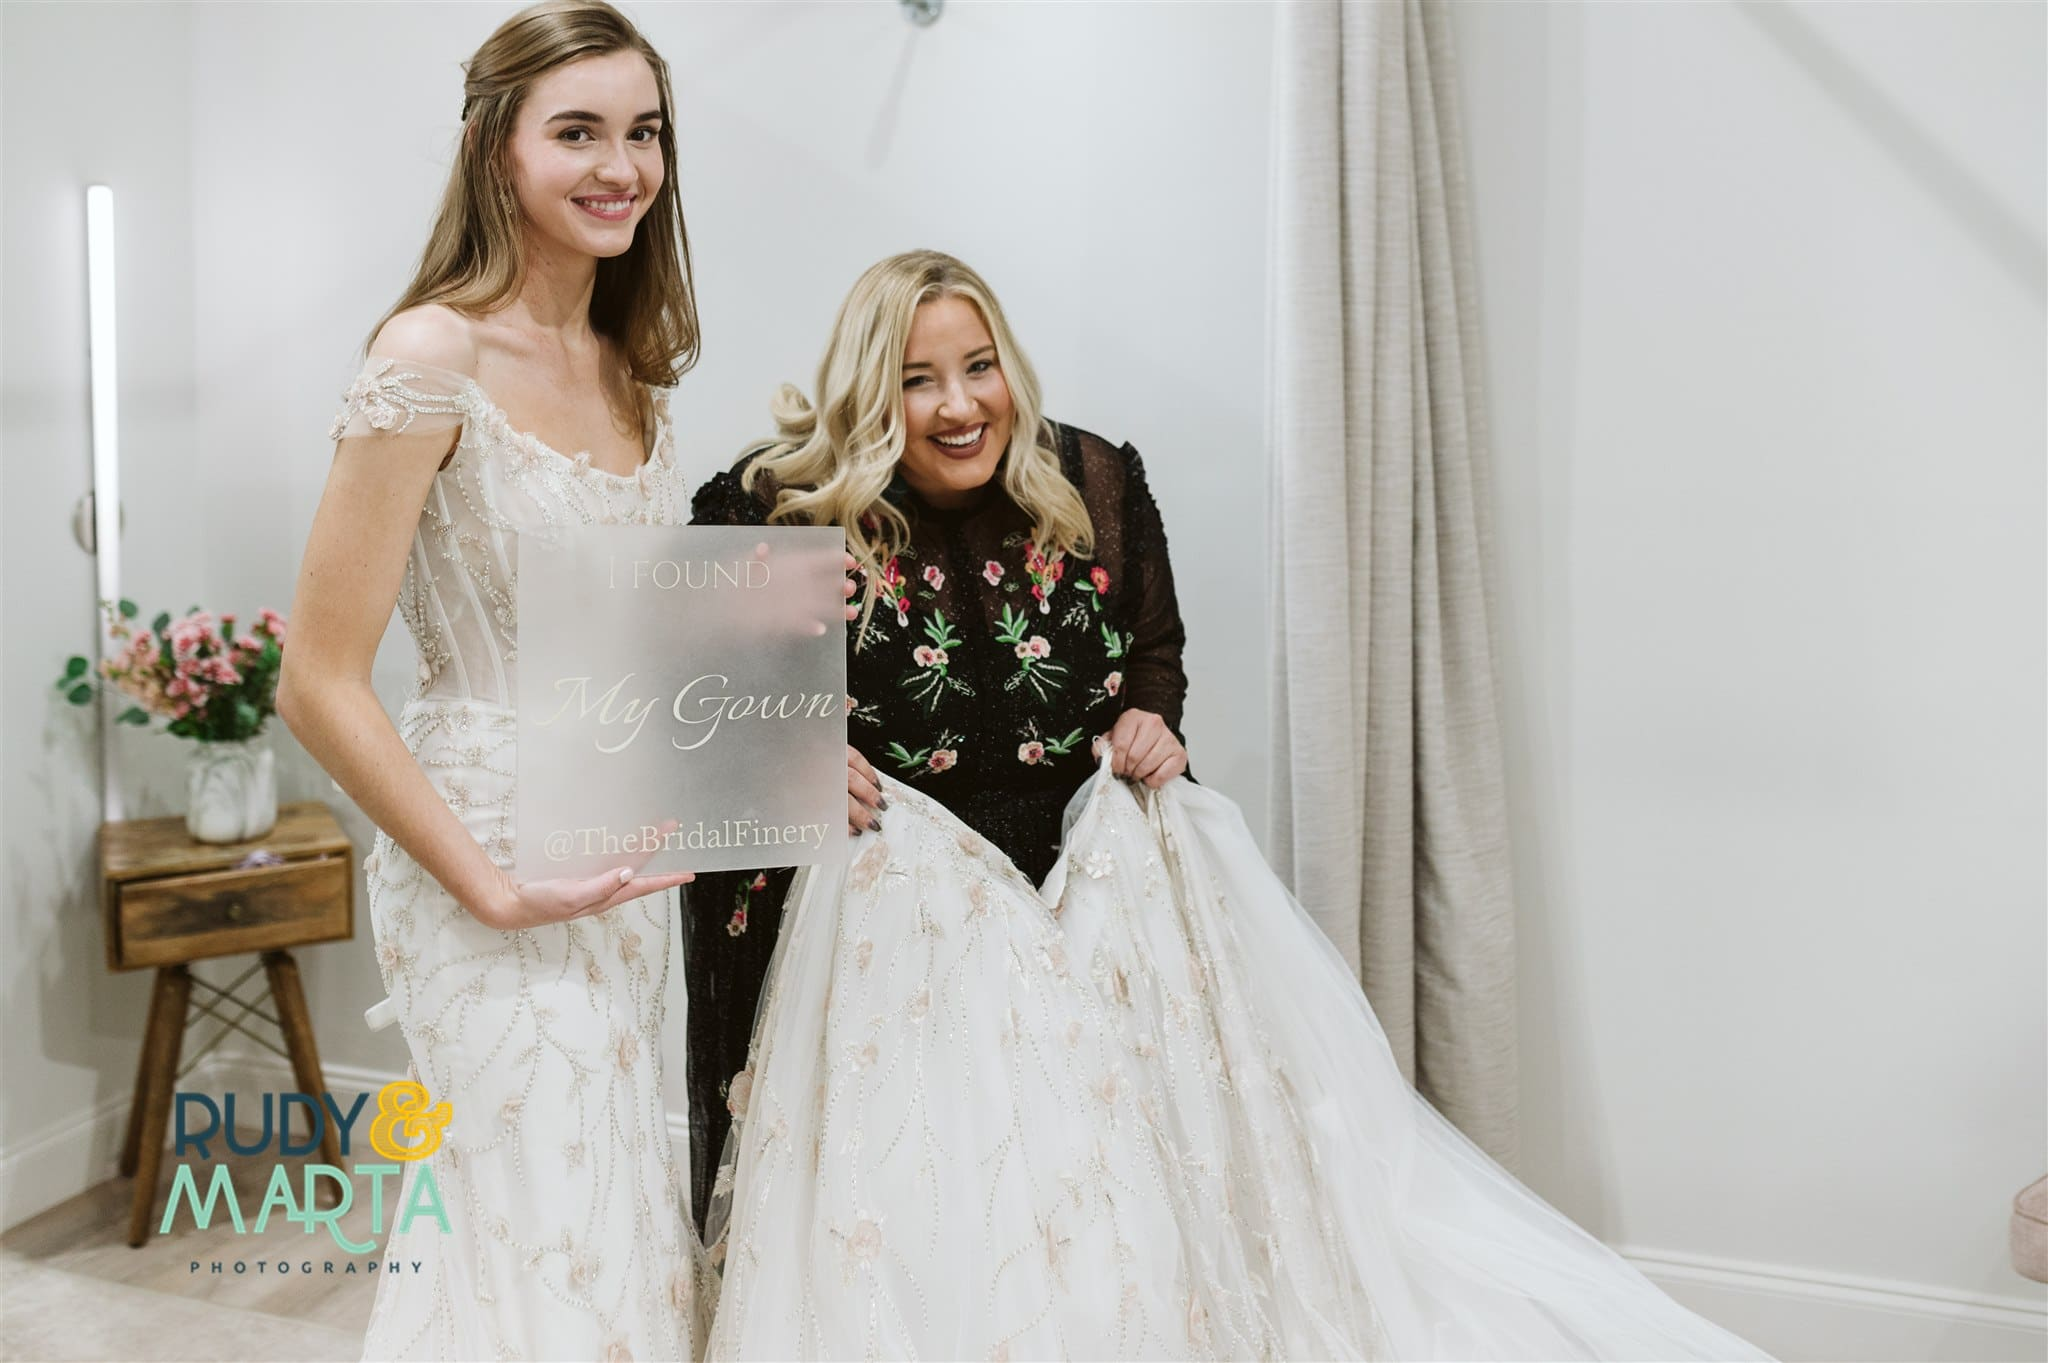 I found my gown at the bridal finery